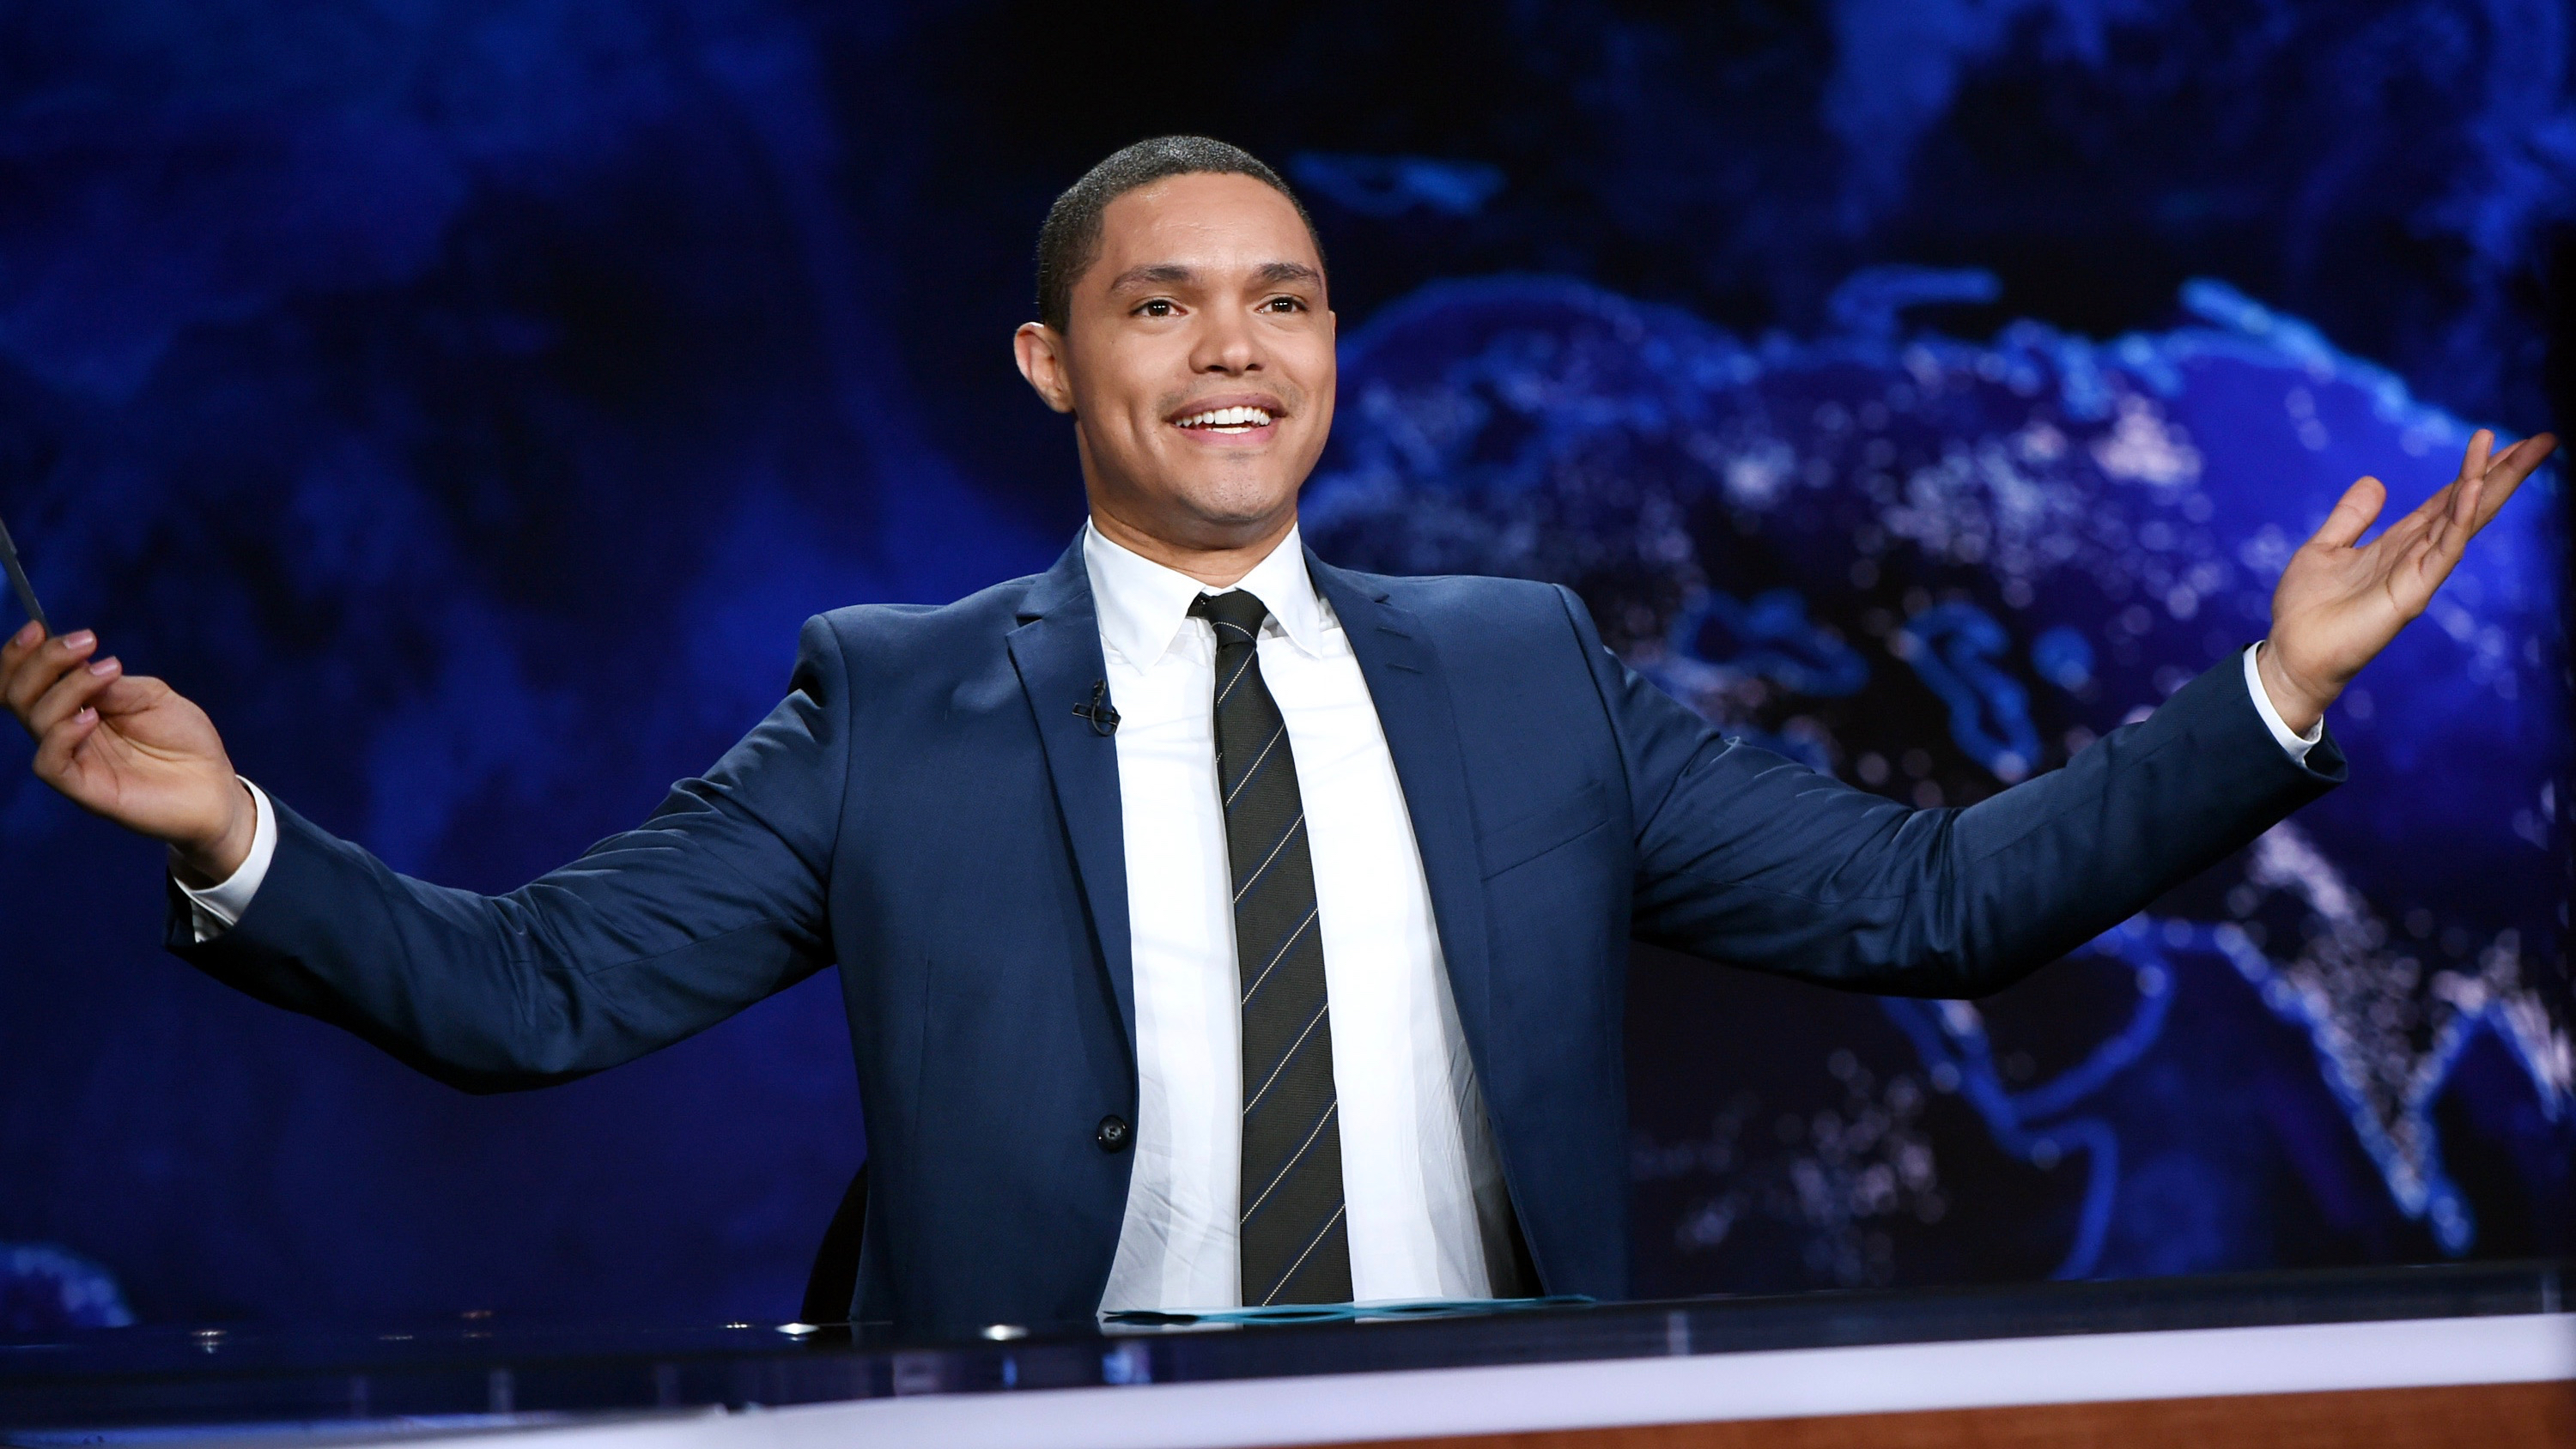 """Trevor Noah on set during a taping of """"The Daily Show with Trevor Noah"""" on Tuesday, Sept. 29, 2015, in New York. (Photo by Evan Agostini/Invision/AP)"""